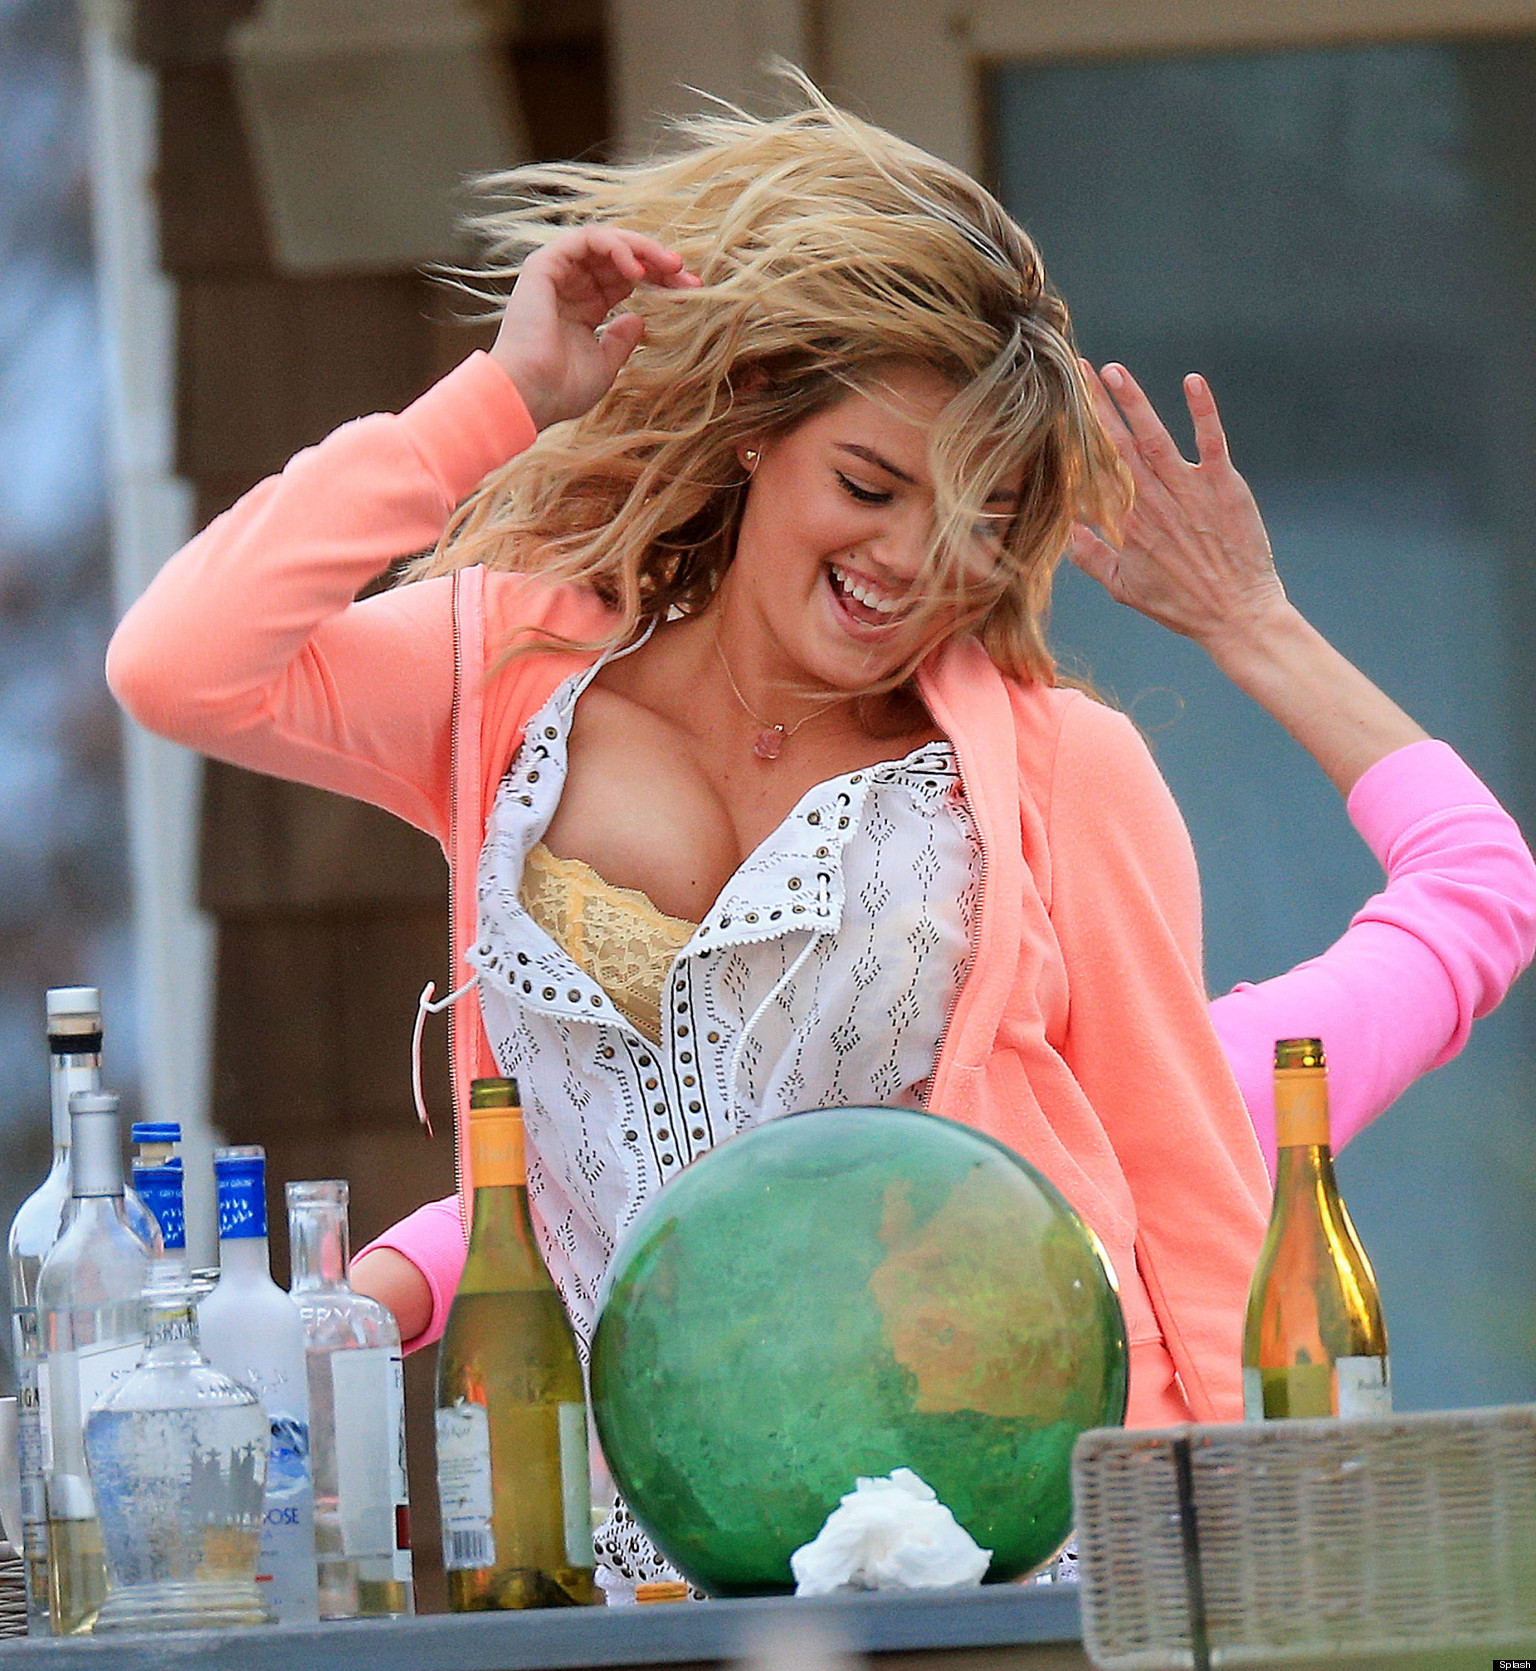 Kate Upton Has Trouble Containing Her Famous Assets On Set